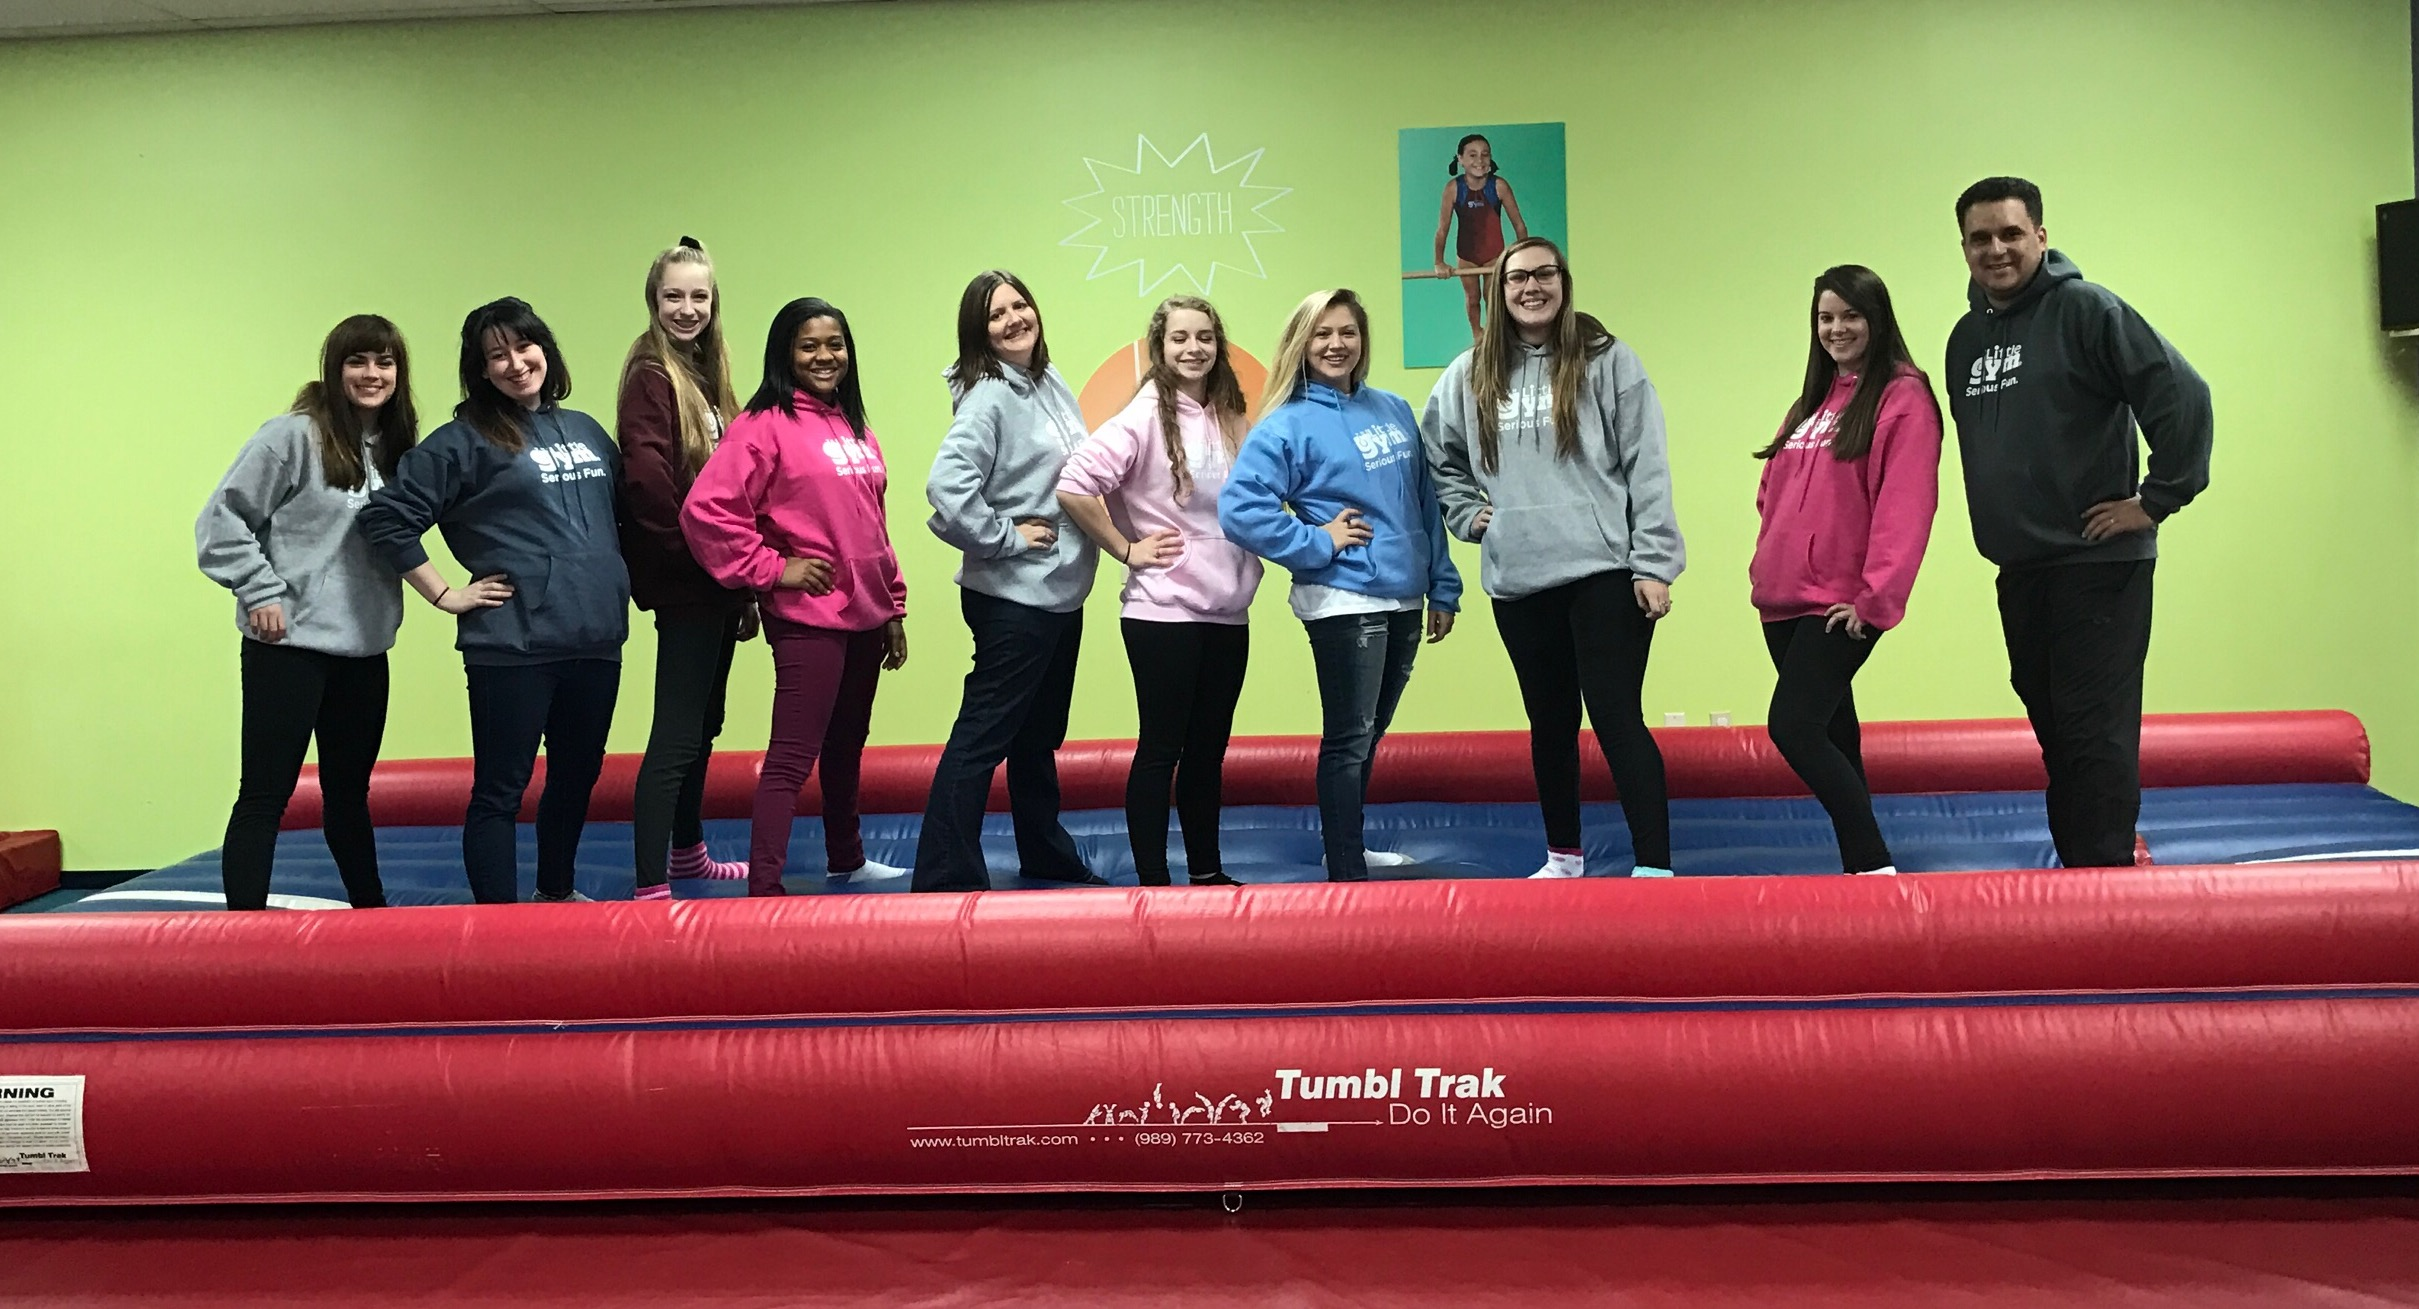 My Final Staff December 2016- Shannon, Kelli, Lyndsey, Victoria, Angel, Anna P., Anna T., Kendall, Mallory, and Corey. (Not pictured Nicolette)